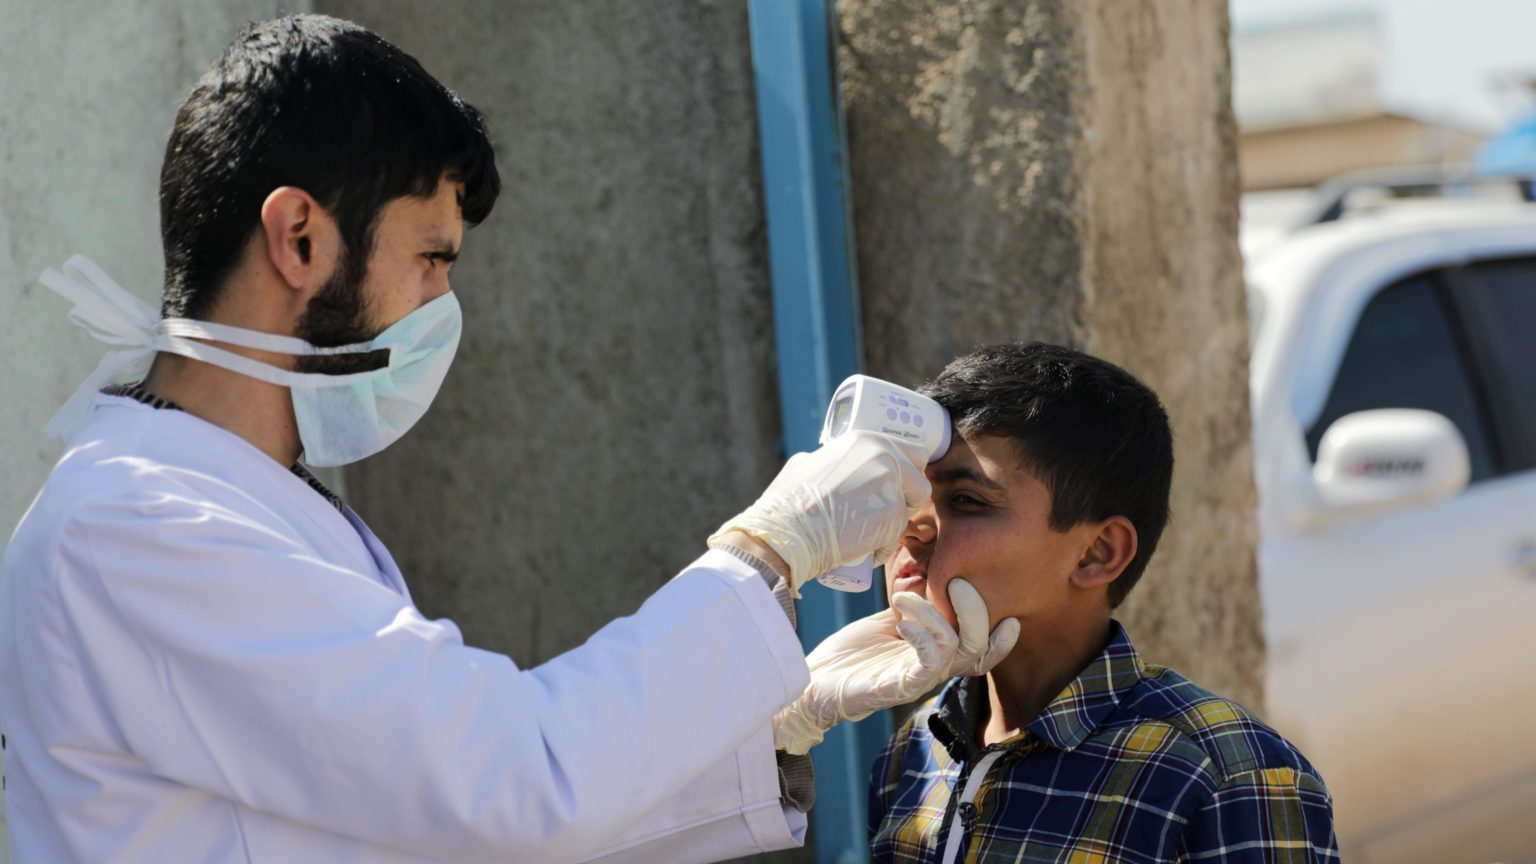 Paramedic taking a child's temperature within COVID-19 preventive measures in Azaz city, northern countryside of Aleppo —11 March 2020 (Reuters)